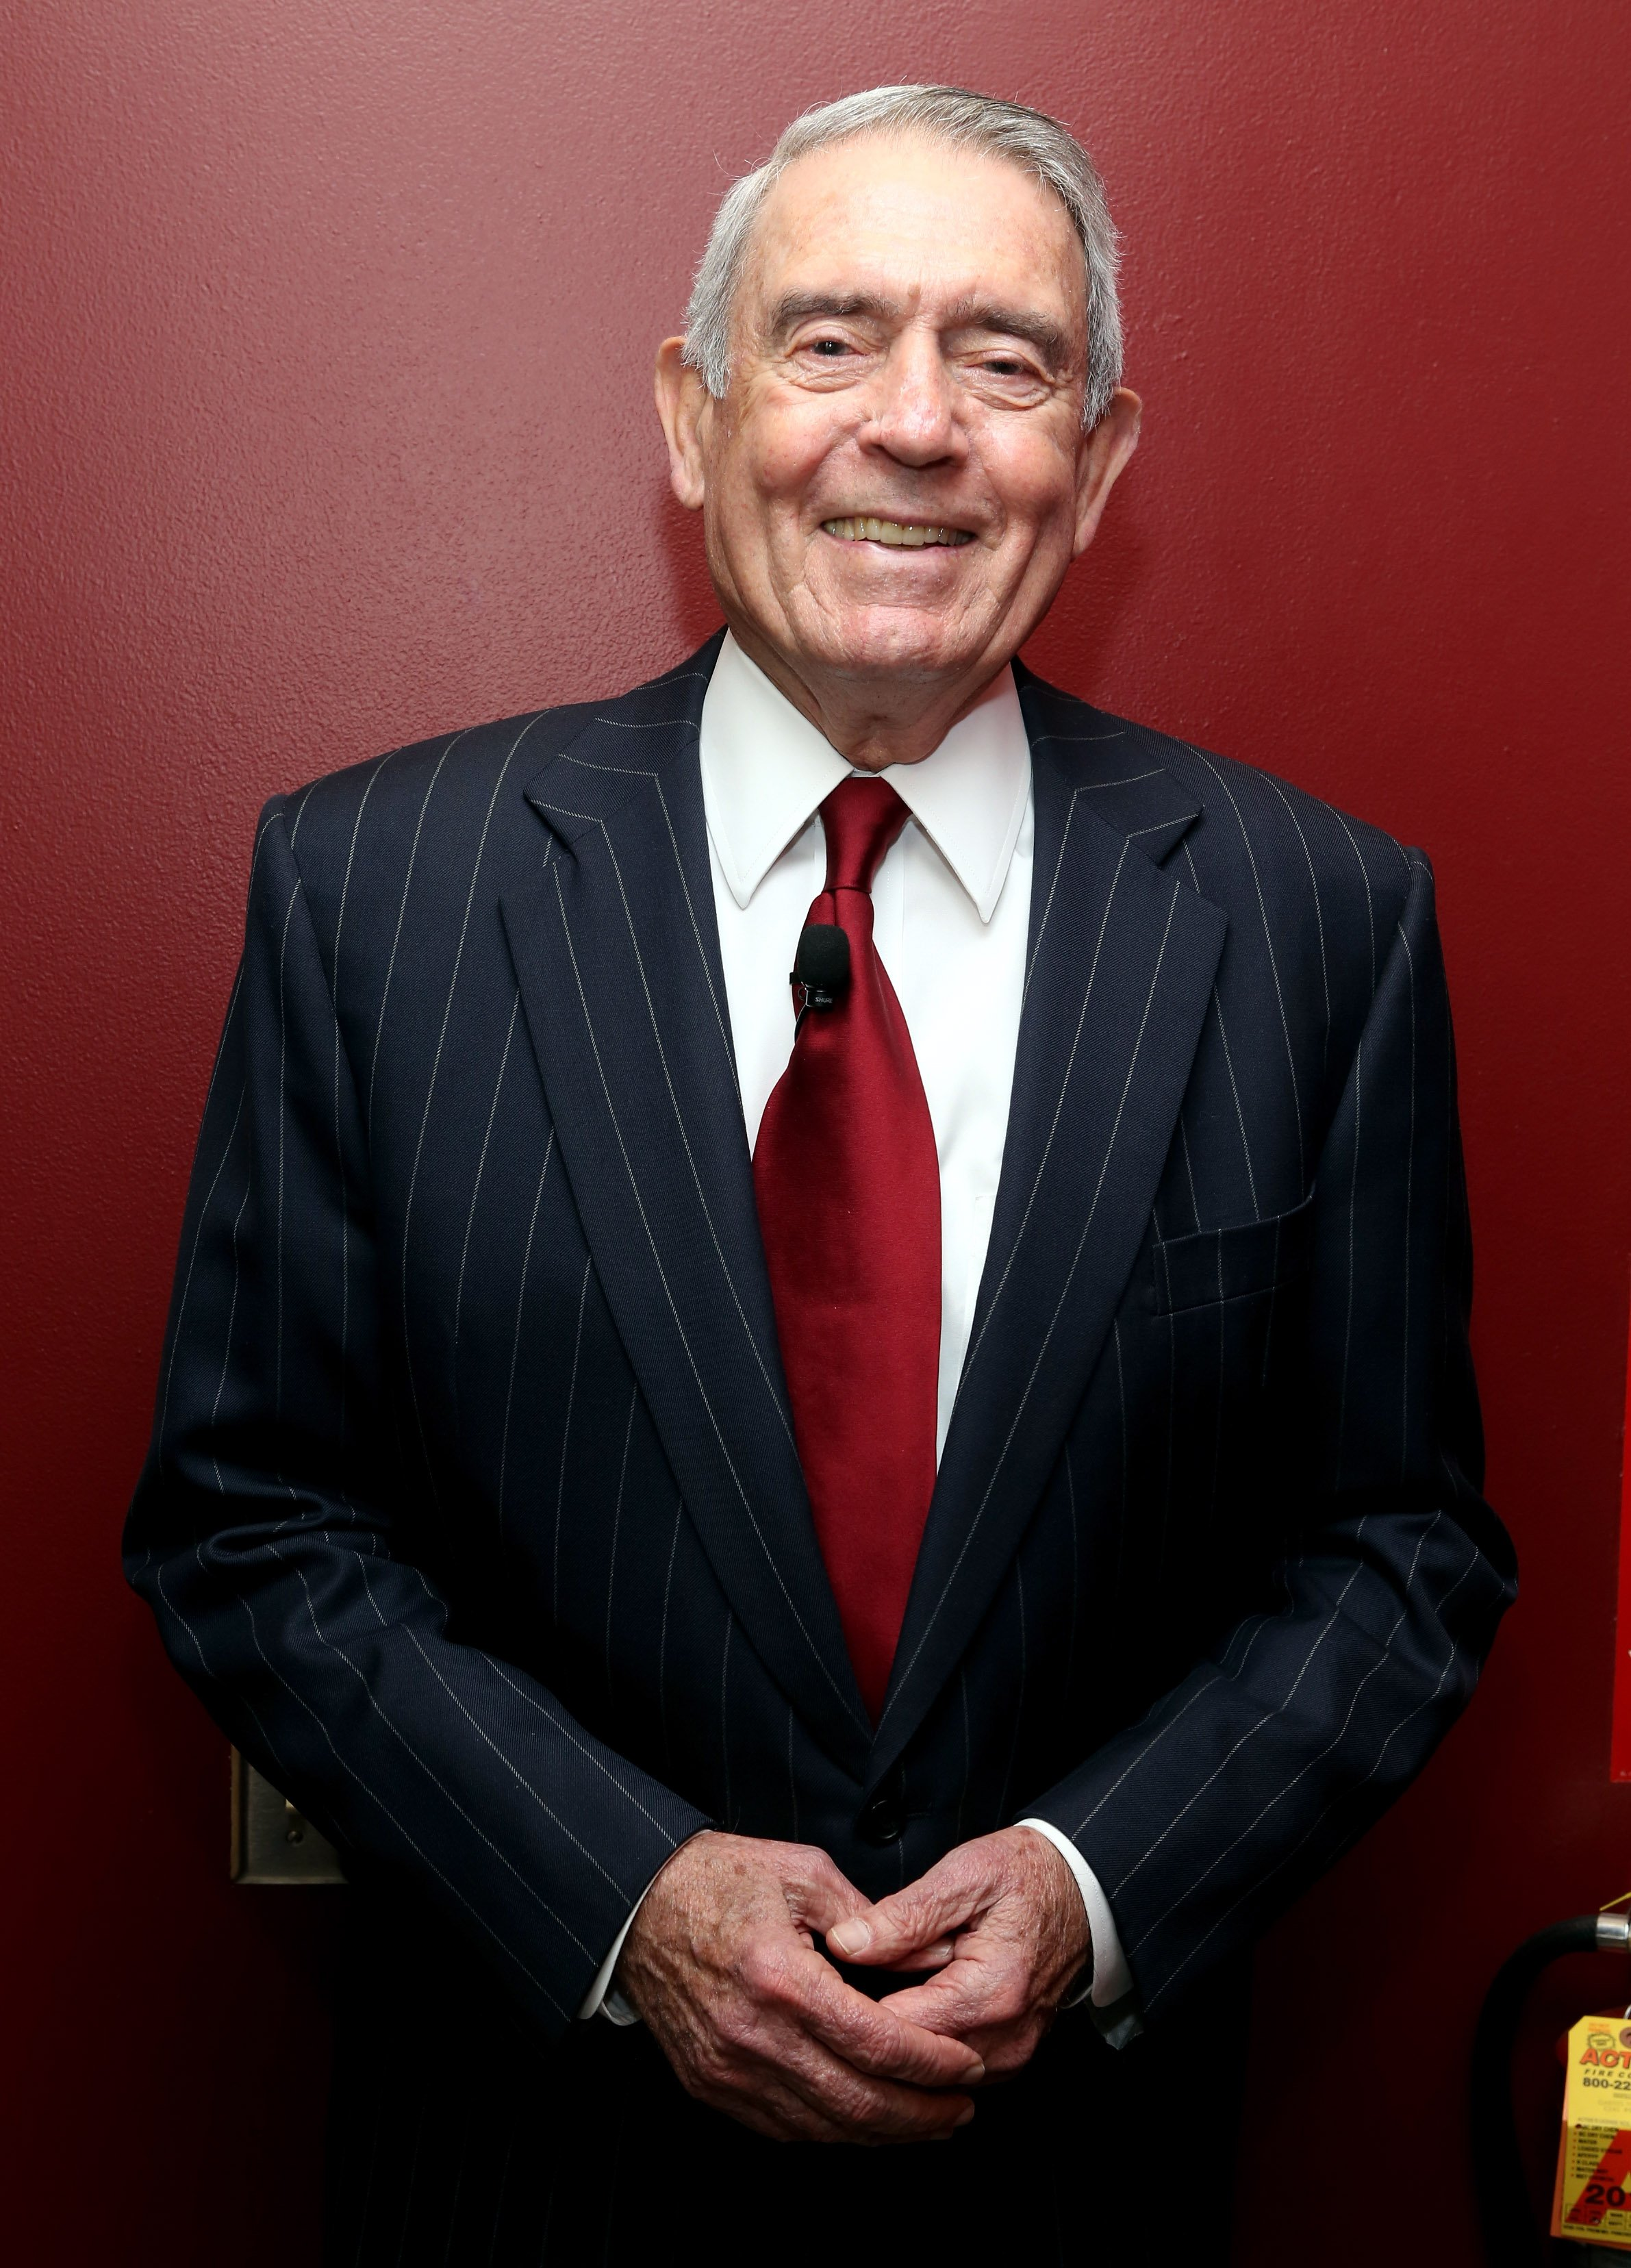 Dan Rather poses for The Newsmen: Changing Dynamics of Media, Tech, and Journalism panel on September 30, 2014 in New York City. Source: Getty Images